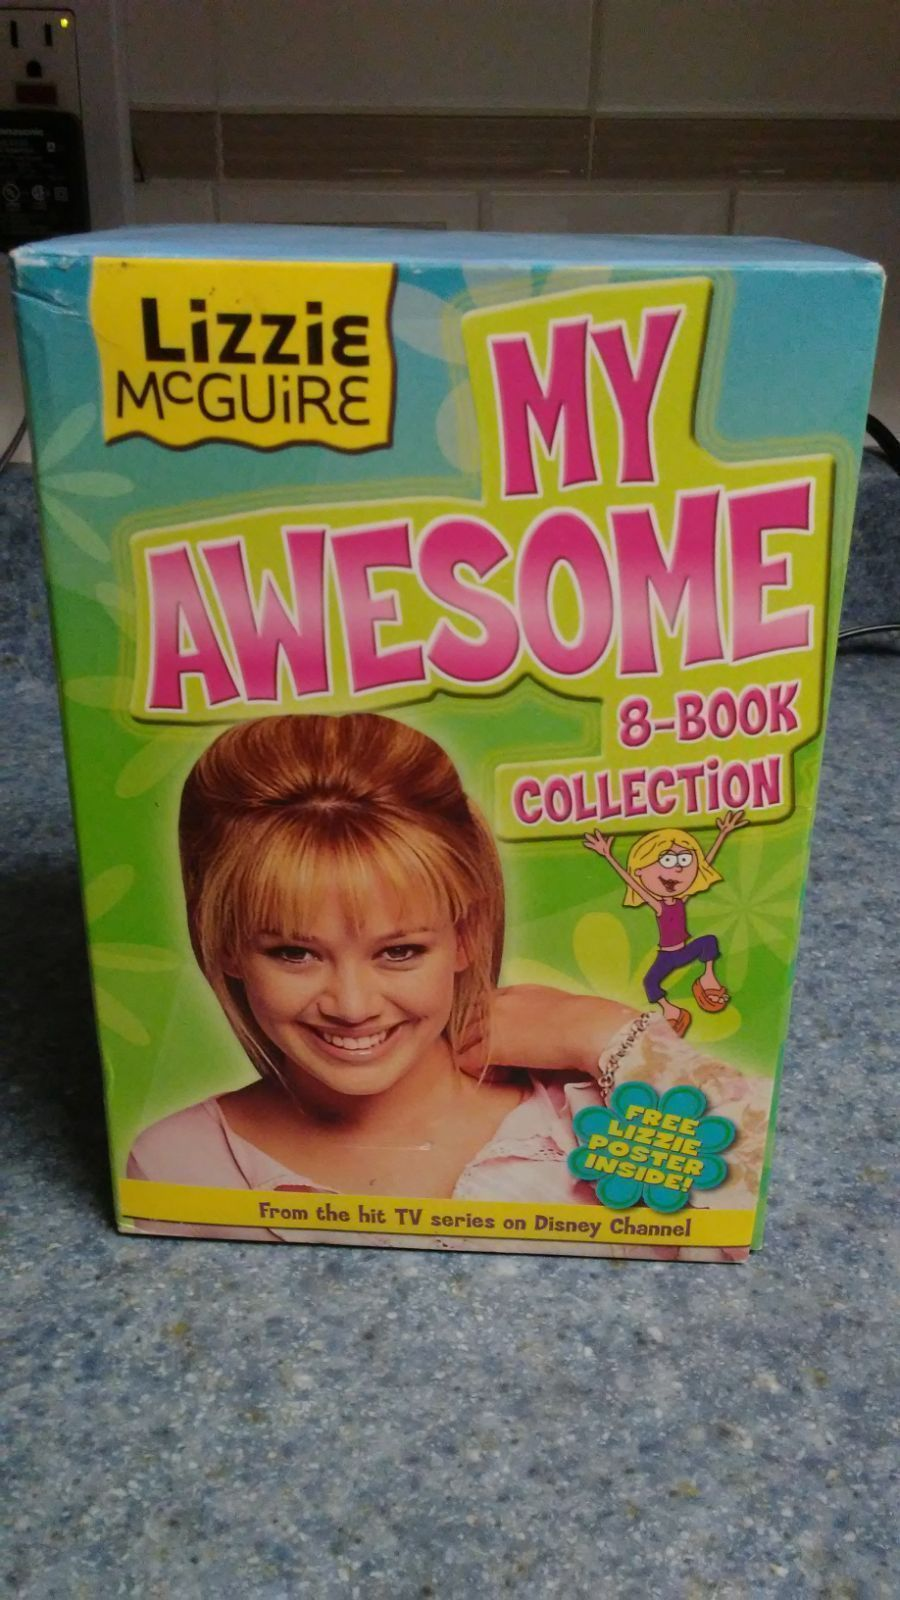 Totally awesome Lizzie Mcguire 8 book collection in case. Perfect for any Lizzie fan! These are a great read especially before the new Lizzie Mcguire series airs!! *does not include poster. #lizziemcguire Totally awesome Lizzie Mcguire 8 book collection in case. Perfect for any Lizzie fan! These are a great read especially before the new Lizzie Mcguire series airs!! *does not include poster. #lizziemcguire Totally awesome Lizzie Mcguire 8 book collection in case. Perfect for any Lizzie fan! Thes #lizziemcguire